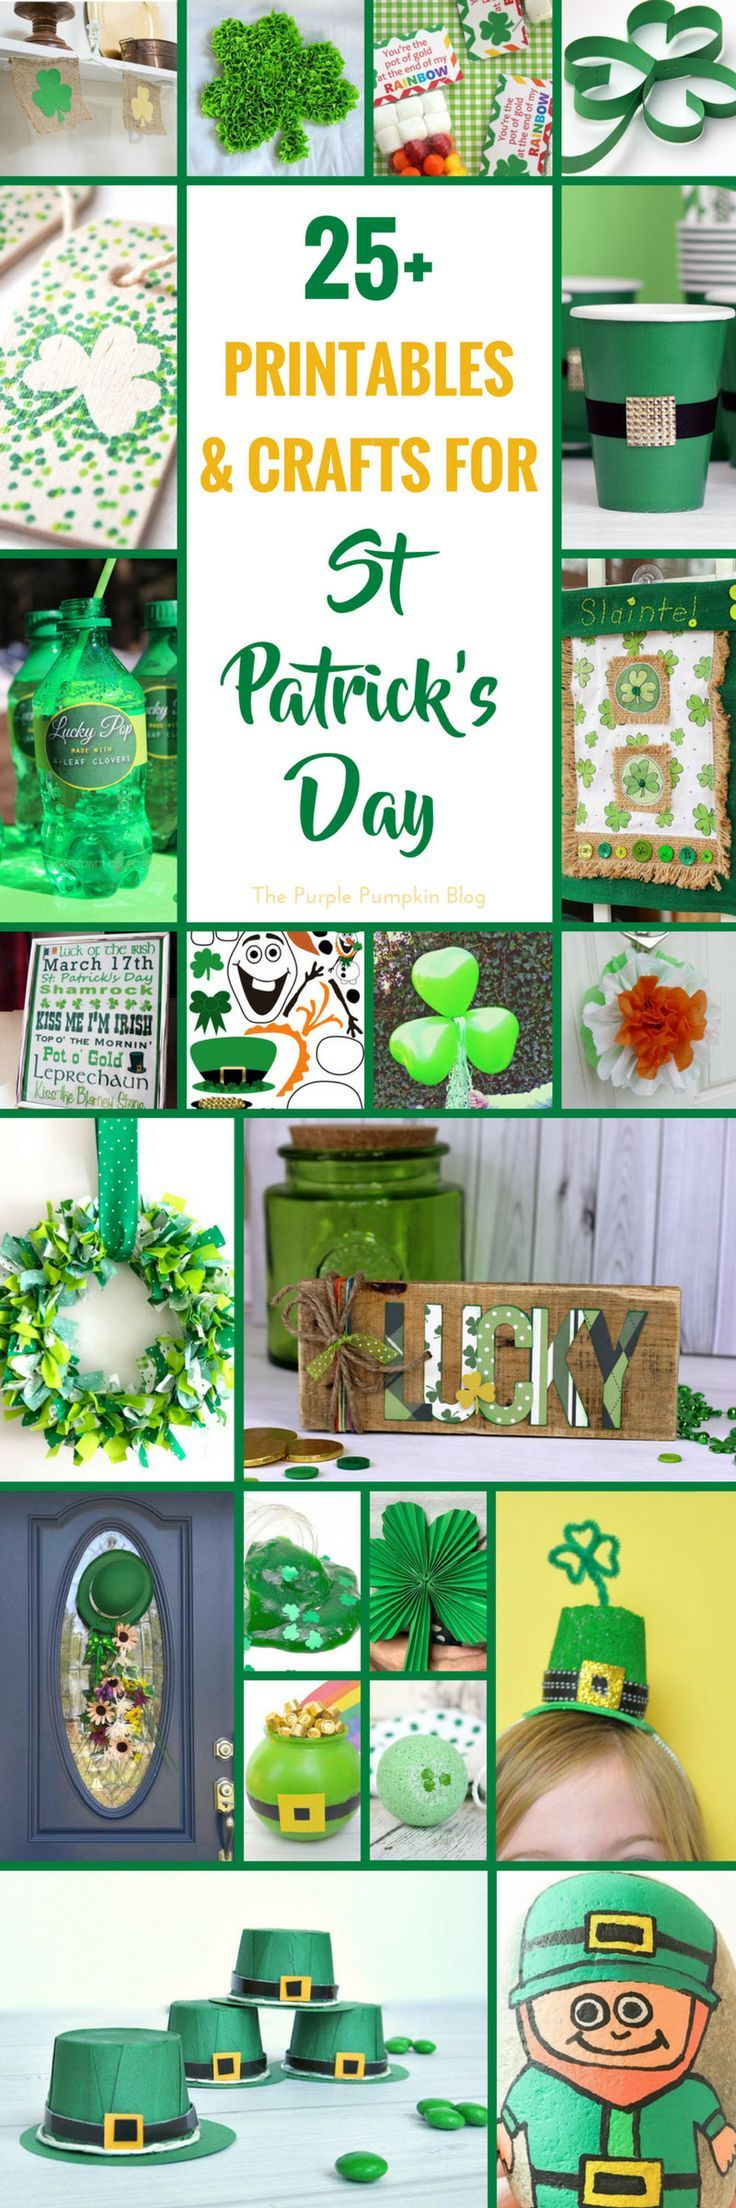 25 Printables & Crafts for St. Patrick's Day! Features a lot of green materials that make a fun selection of crafts! Celebrate St. Patrick's Day with some of these creative ideas including rock painting, paper crafts, and St. Patricks Day house decor. #StPatricksDayCrafts #PattysDayCrafts #PaddysDayCrafts via @mspurplepumpkin